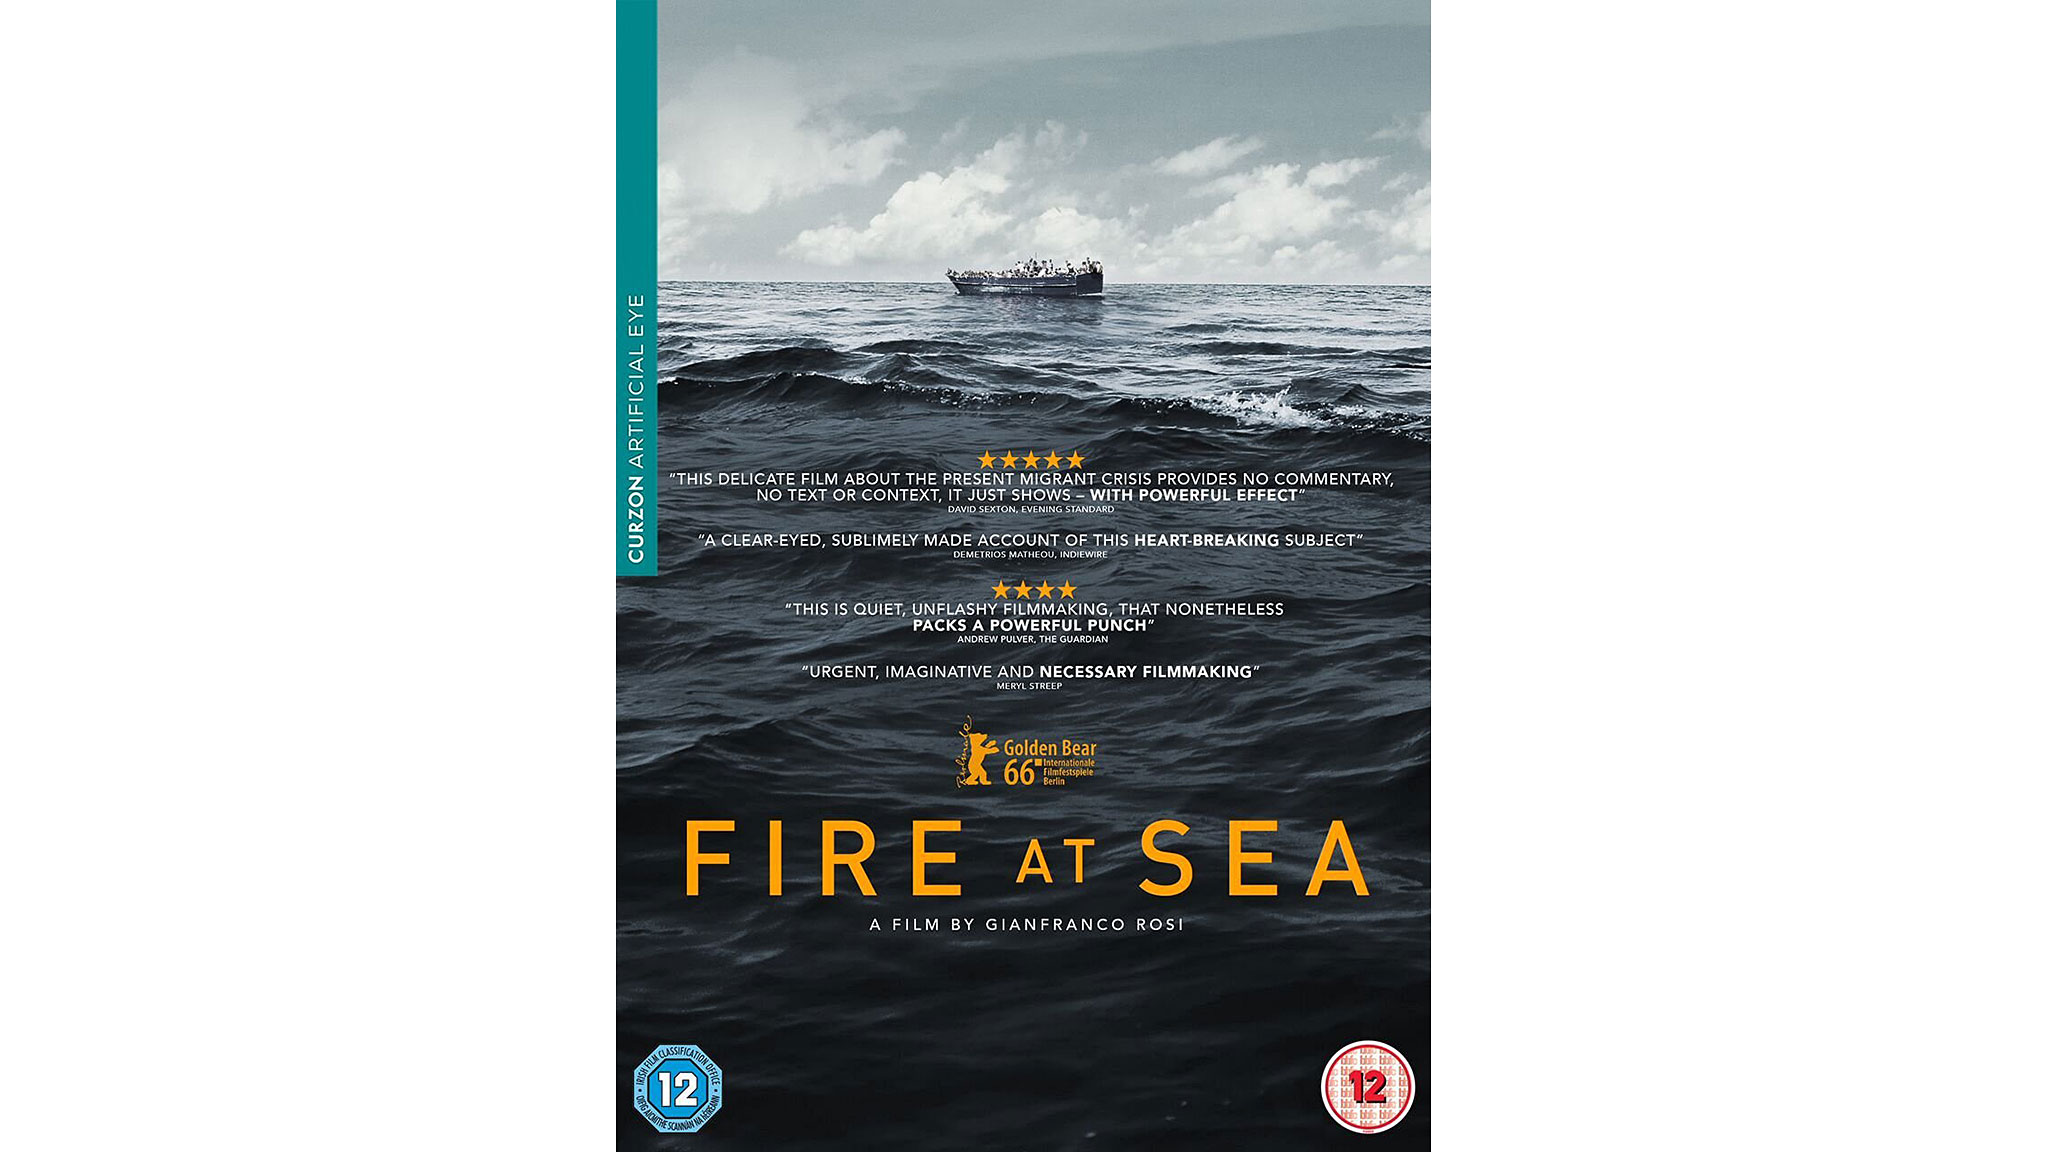 Fire at Sea — DVD review